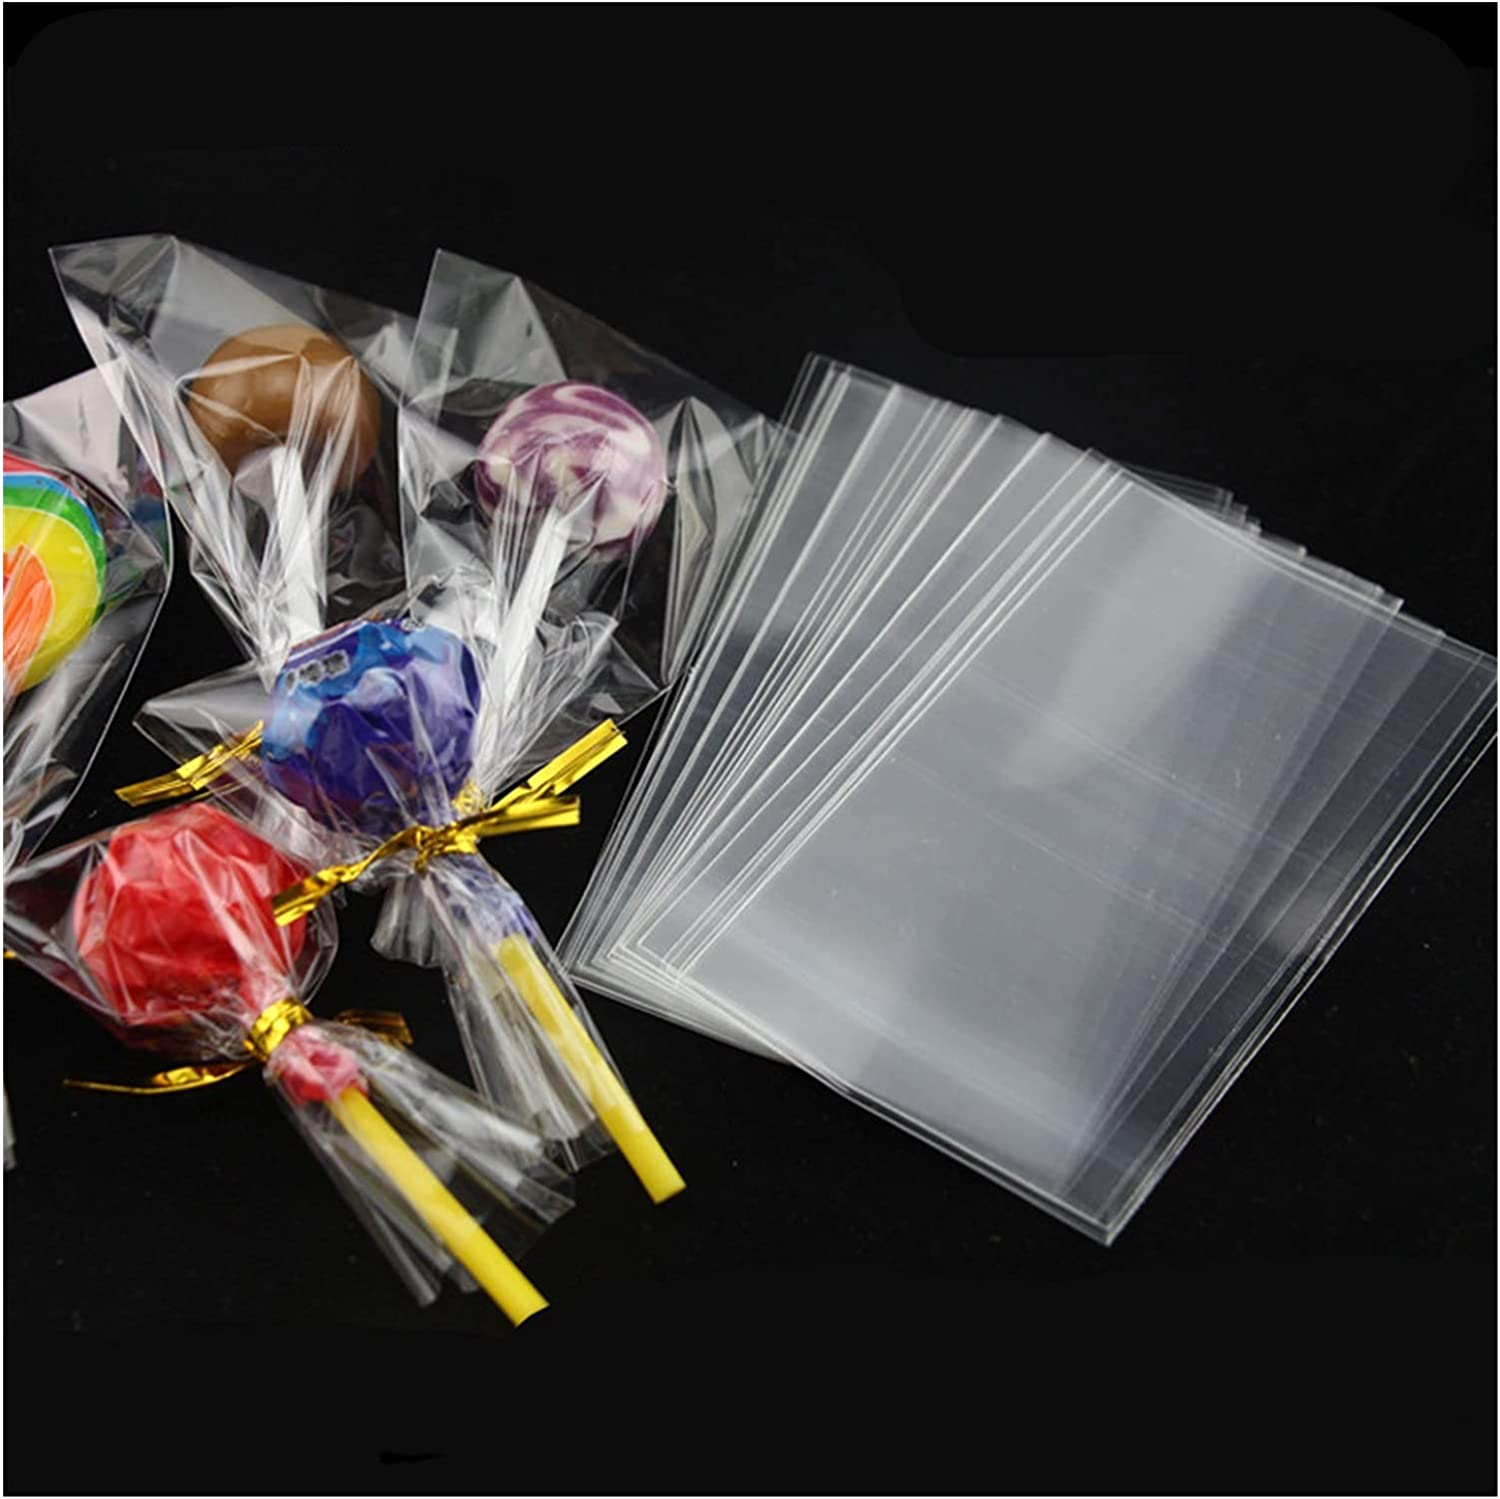 SHUKELE DAIZI823 200pcs Long Clear Open Bag OPP Limited price Cand Fort Worth Mall Plastic Top